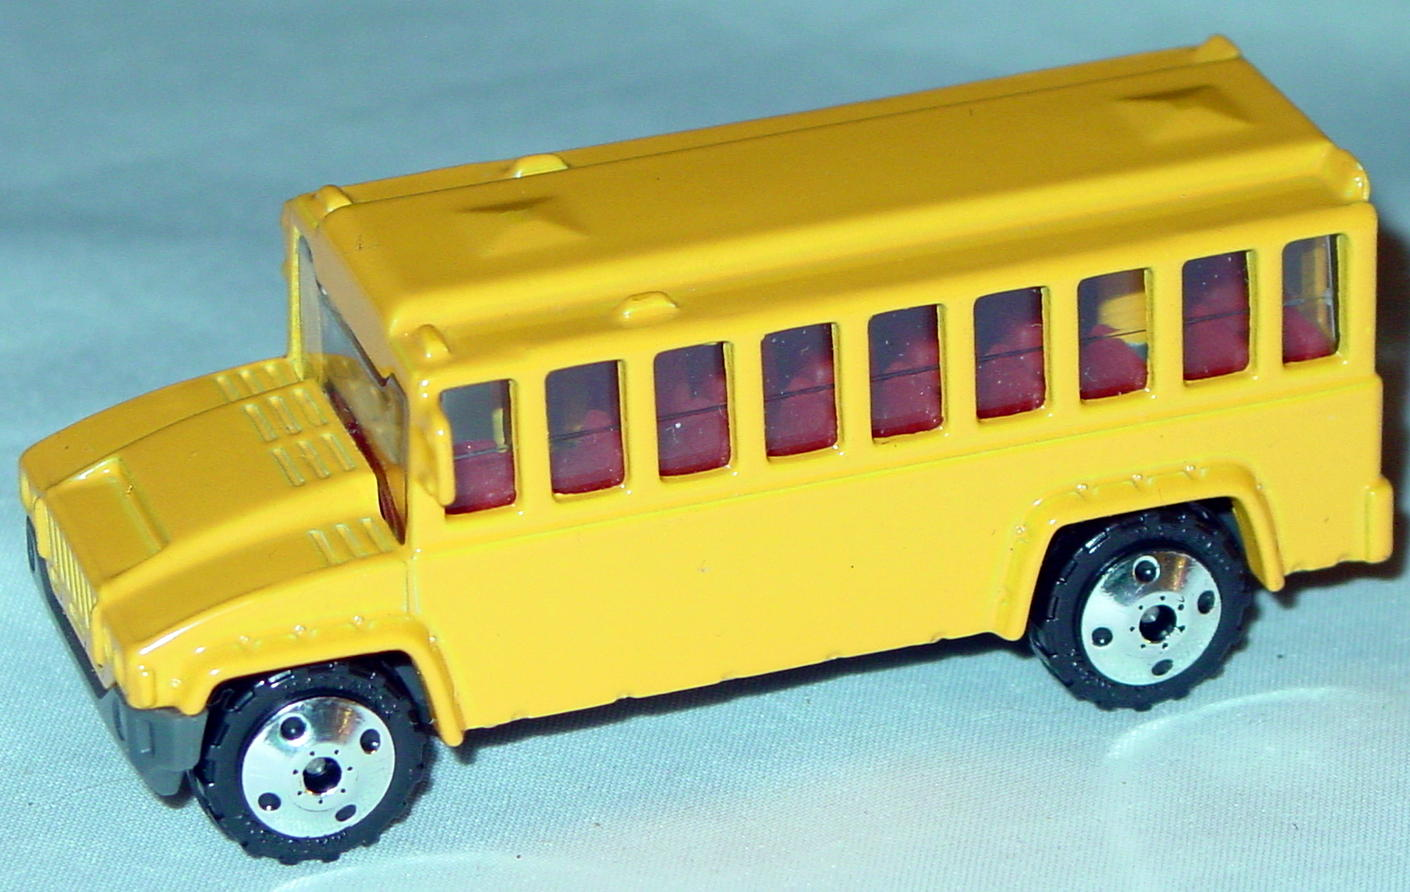 ASAP-CCI 16 G 9 - School Bus org-Yellow CCI blank